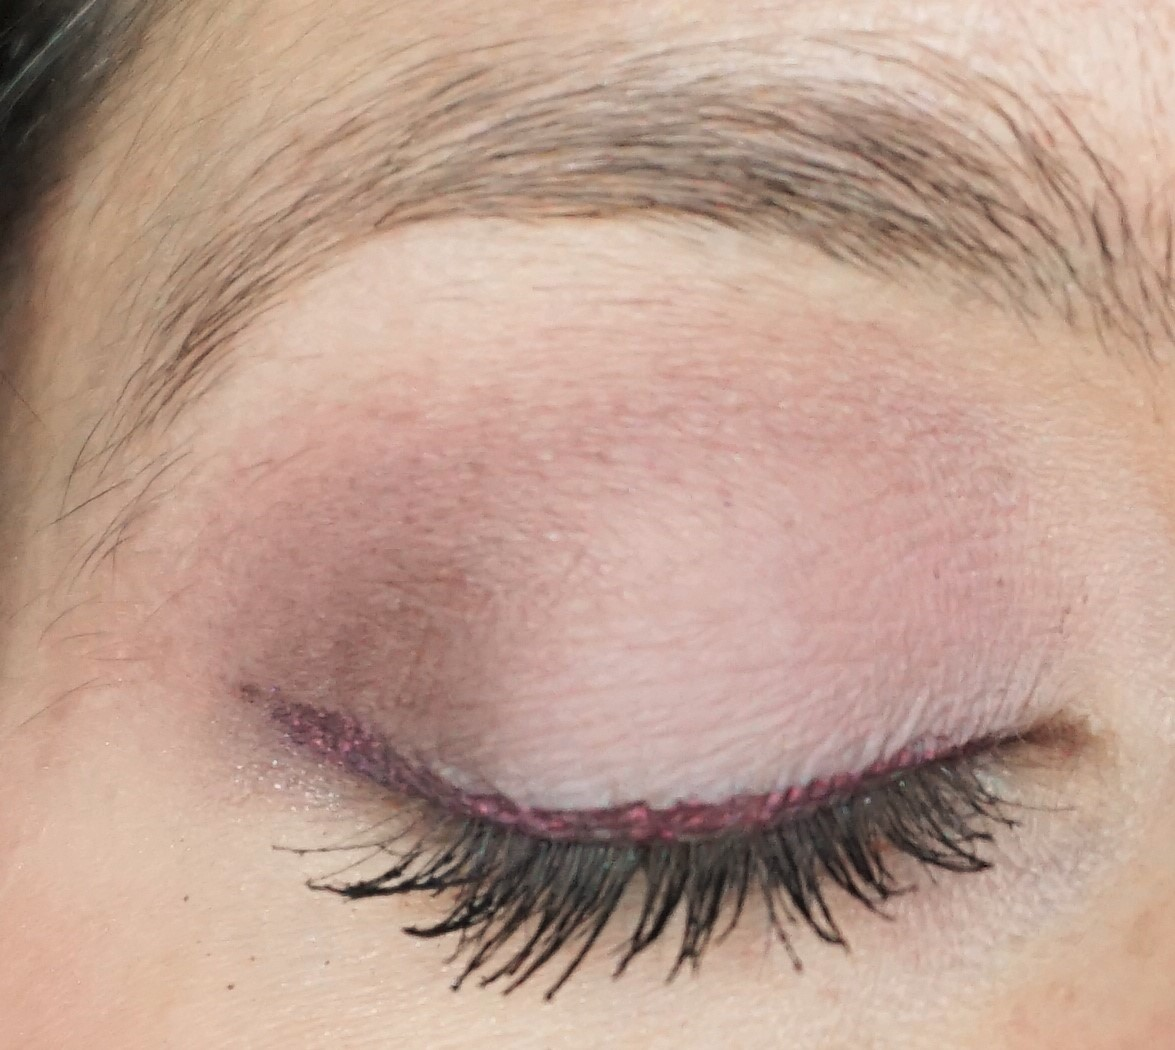 For this look, I used shades from the Urban Decay Naked 3 Palette to create  a soft, plummy effect on the eyes.